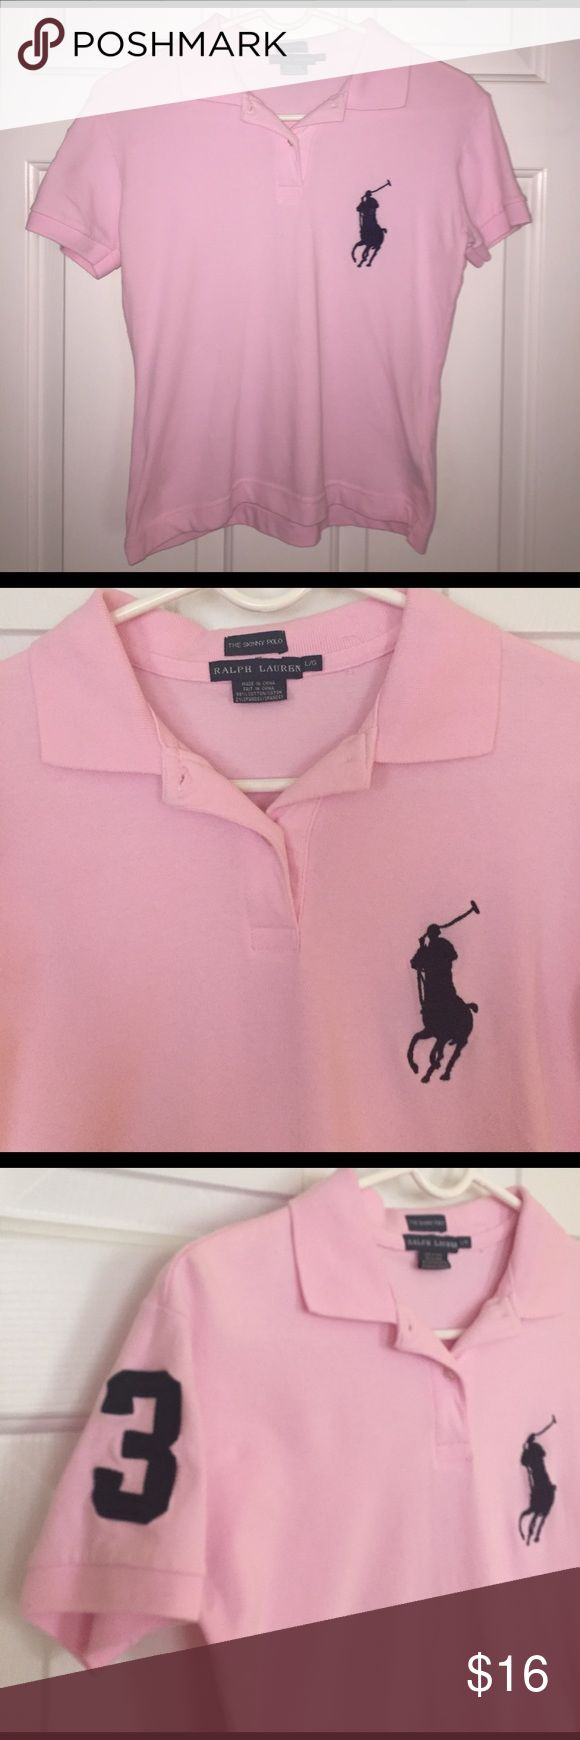 "Ralph Lauren Skinny Polo Adorable pink polo shirt by Ralph Lauren. Large emblem and the number ""3"" on the sleeve. ""The Skinny Polo"" Ralph Lauren Tops"